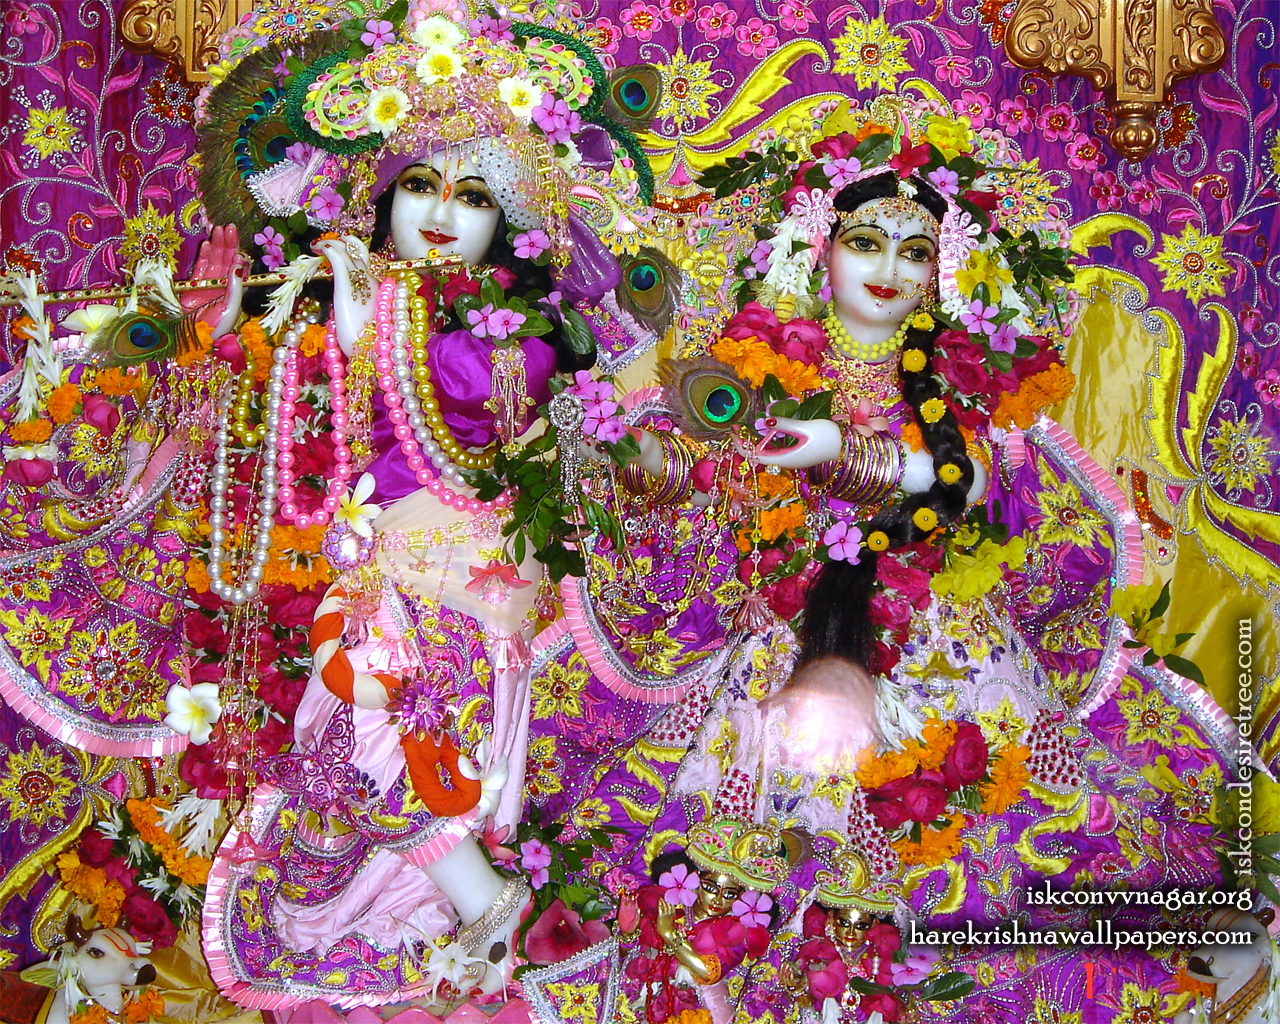 Sri Sri Radha Giridhari Wallpaper (021) Size 1280x1024 Download